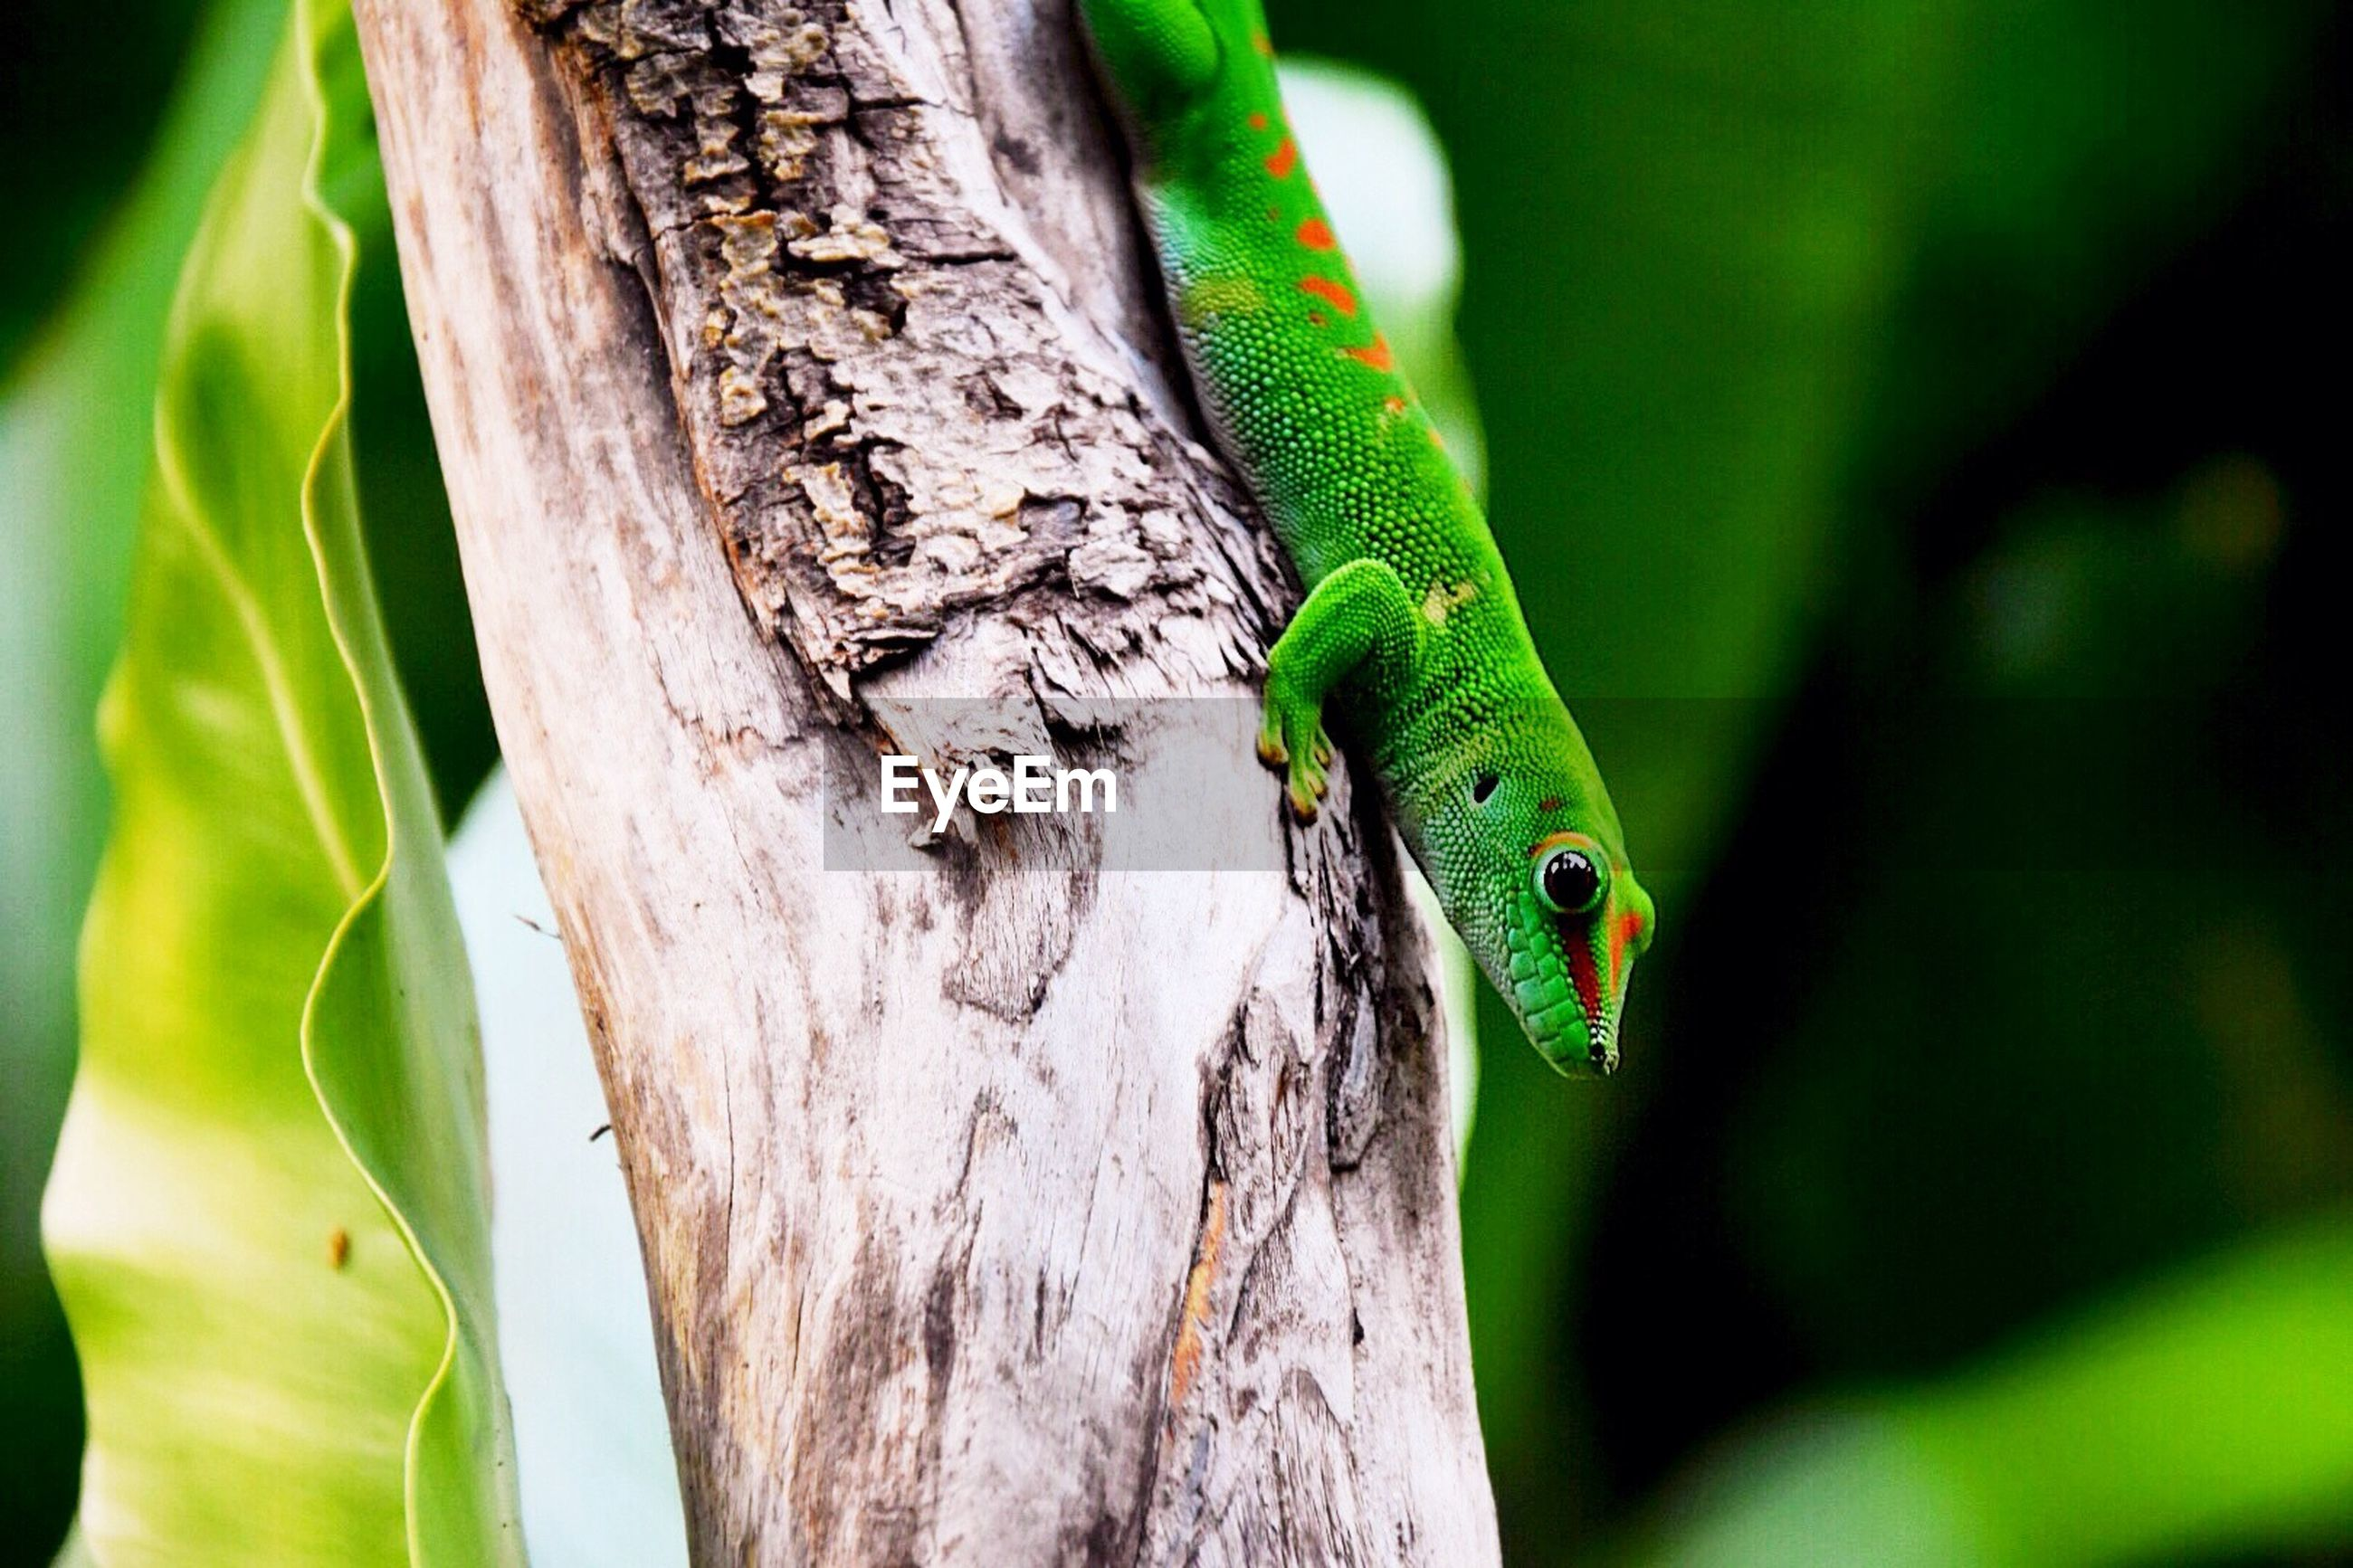 animal themes, one animal, animals in the wild, wildlife, lizard, green color, focus on foreground, close-up, reptile, tree trunk, selective focus, nature, tree, branch, animal head, side view, outdoors, green, zoology, leaf